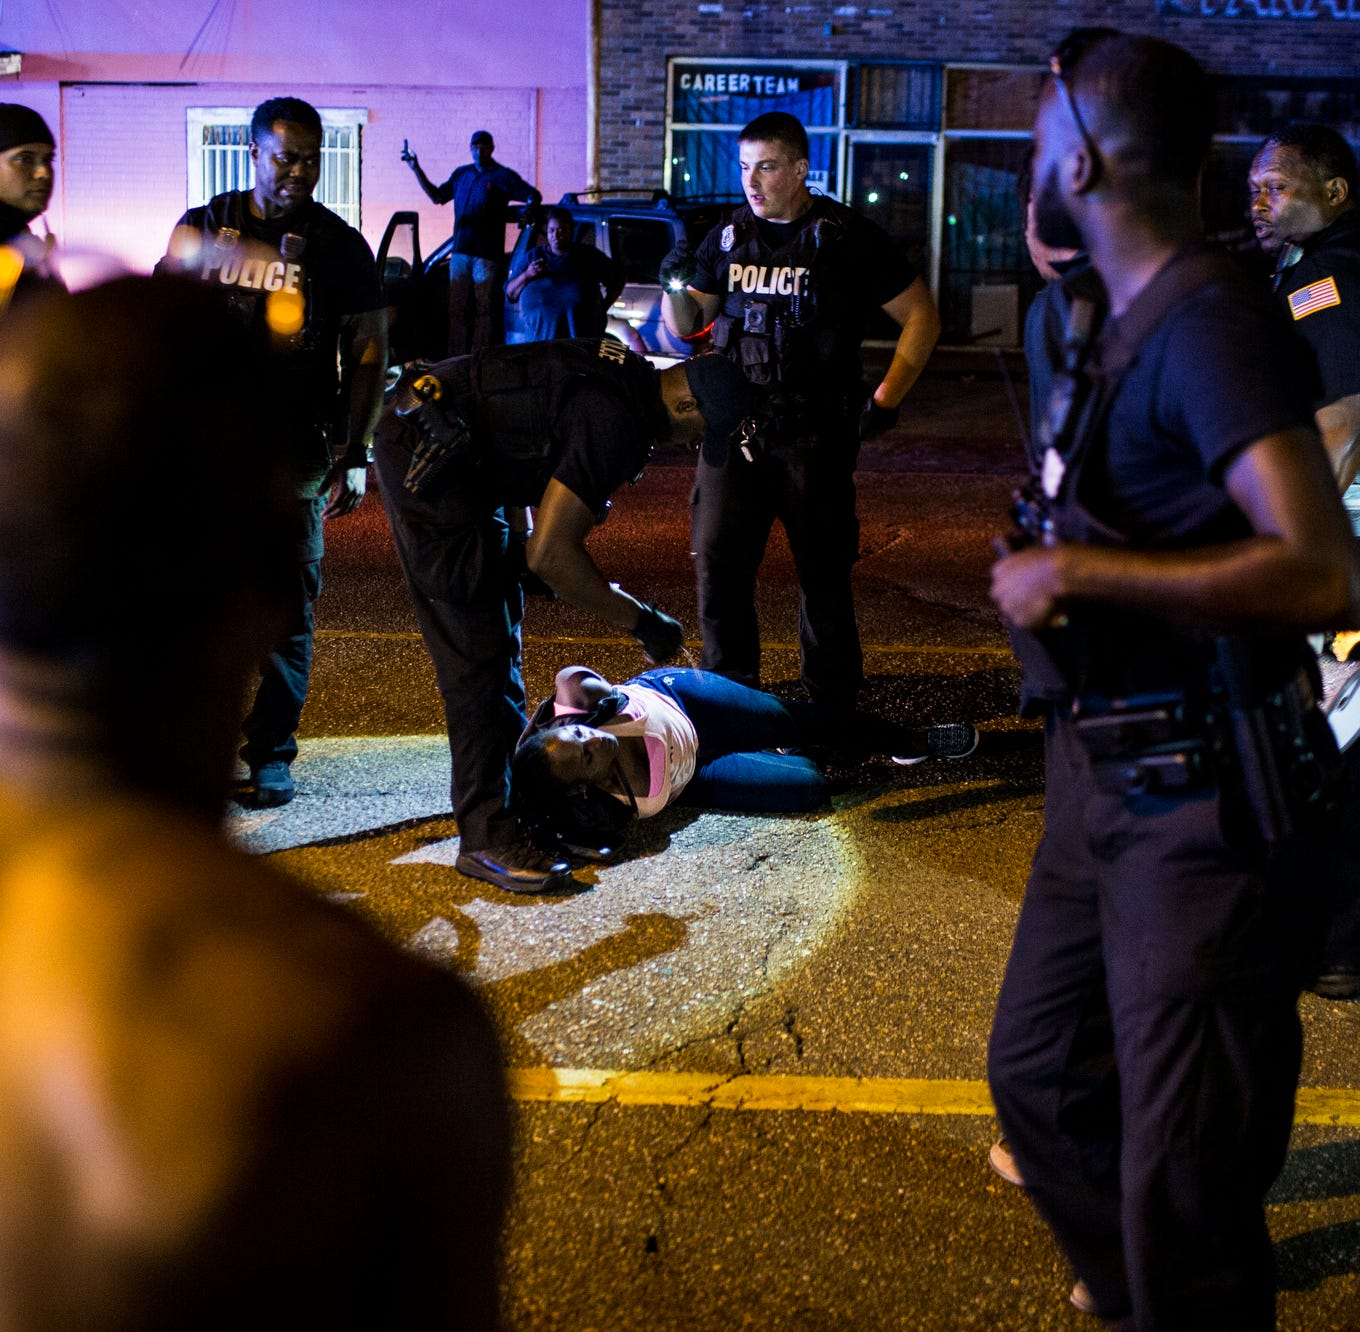 Martavious Banks shooting: 6 protesters arrested after shutting down Elvis Presley Boulevard